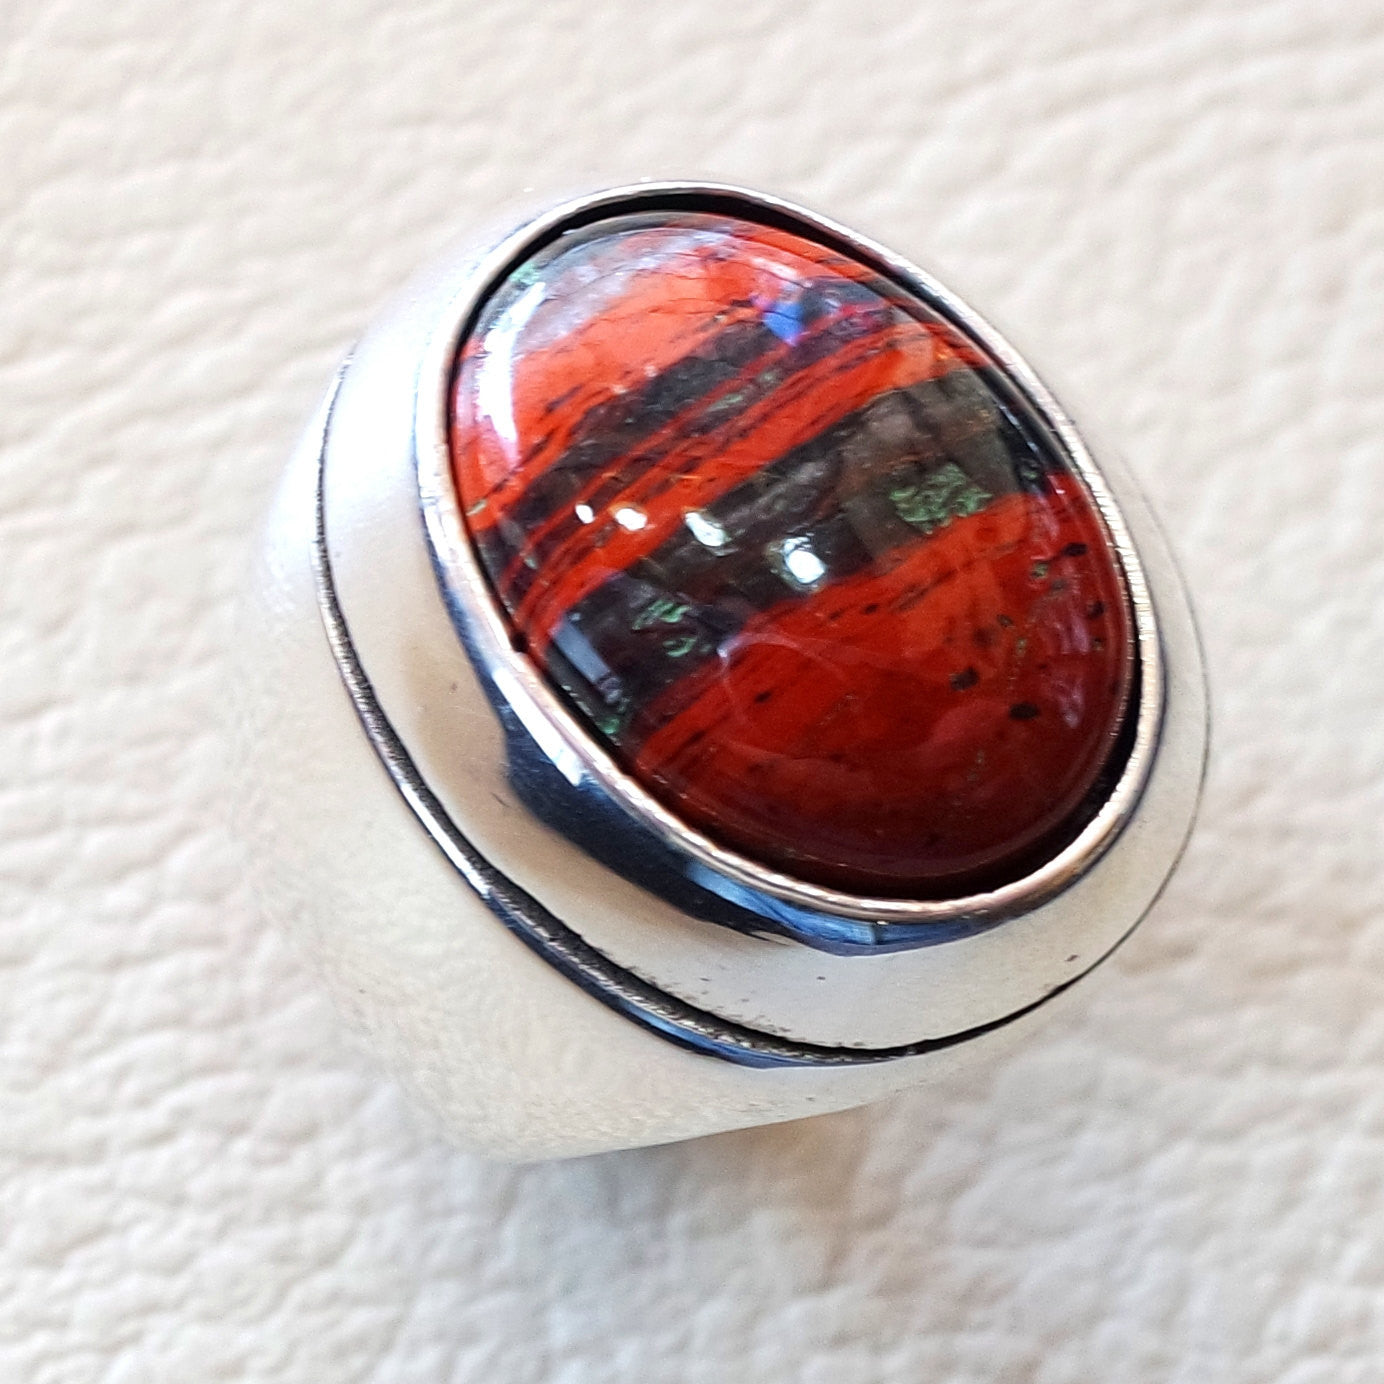 snake skin jasper stone natural gem sterling silver 925 heavy ring red and black oval semi precious cabochon man ring jewelry all sizes